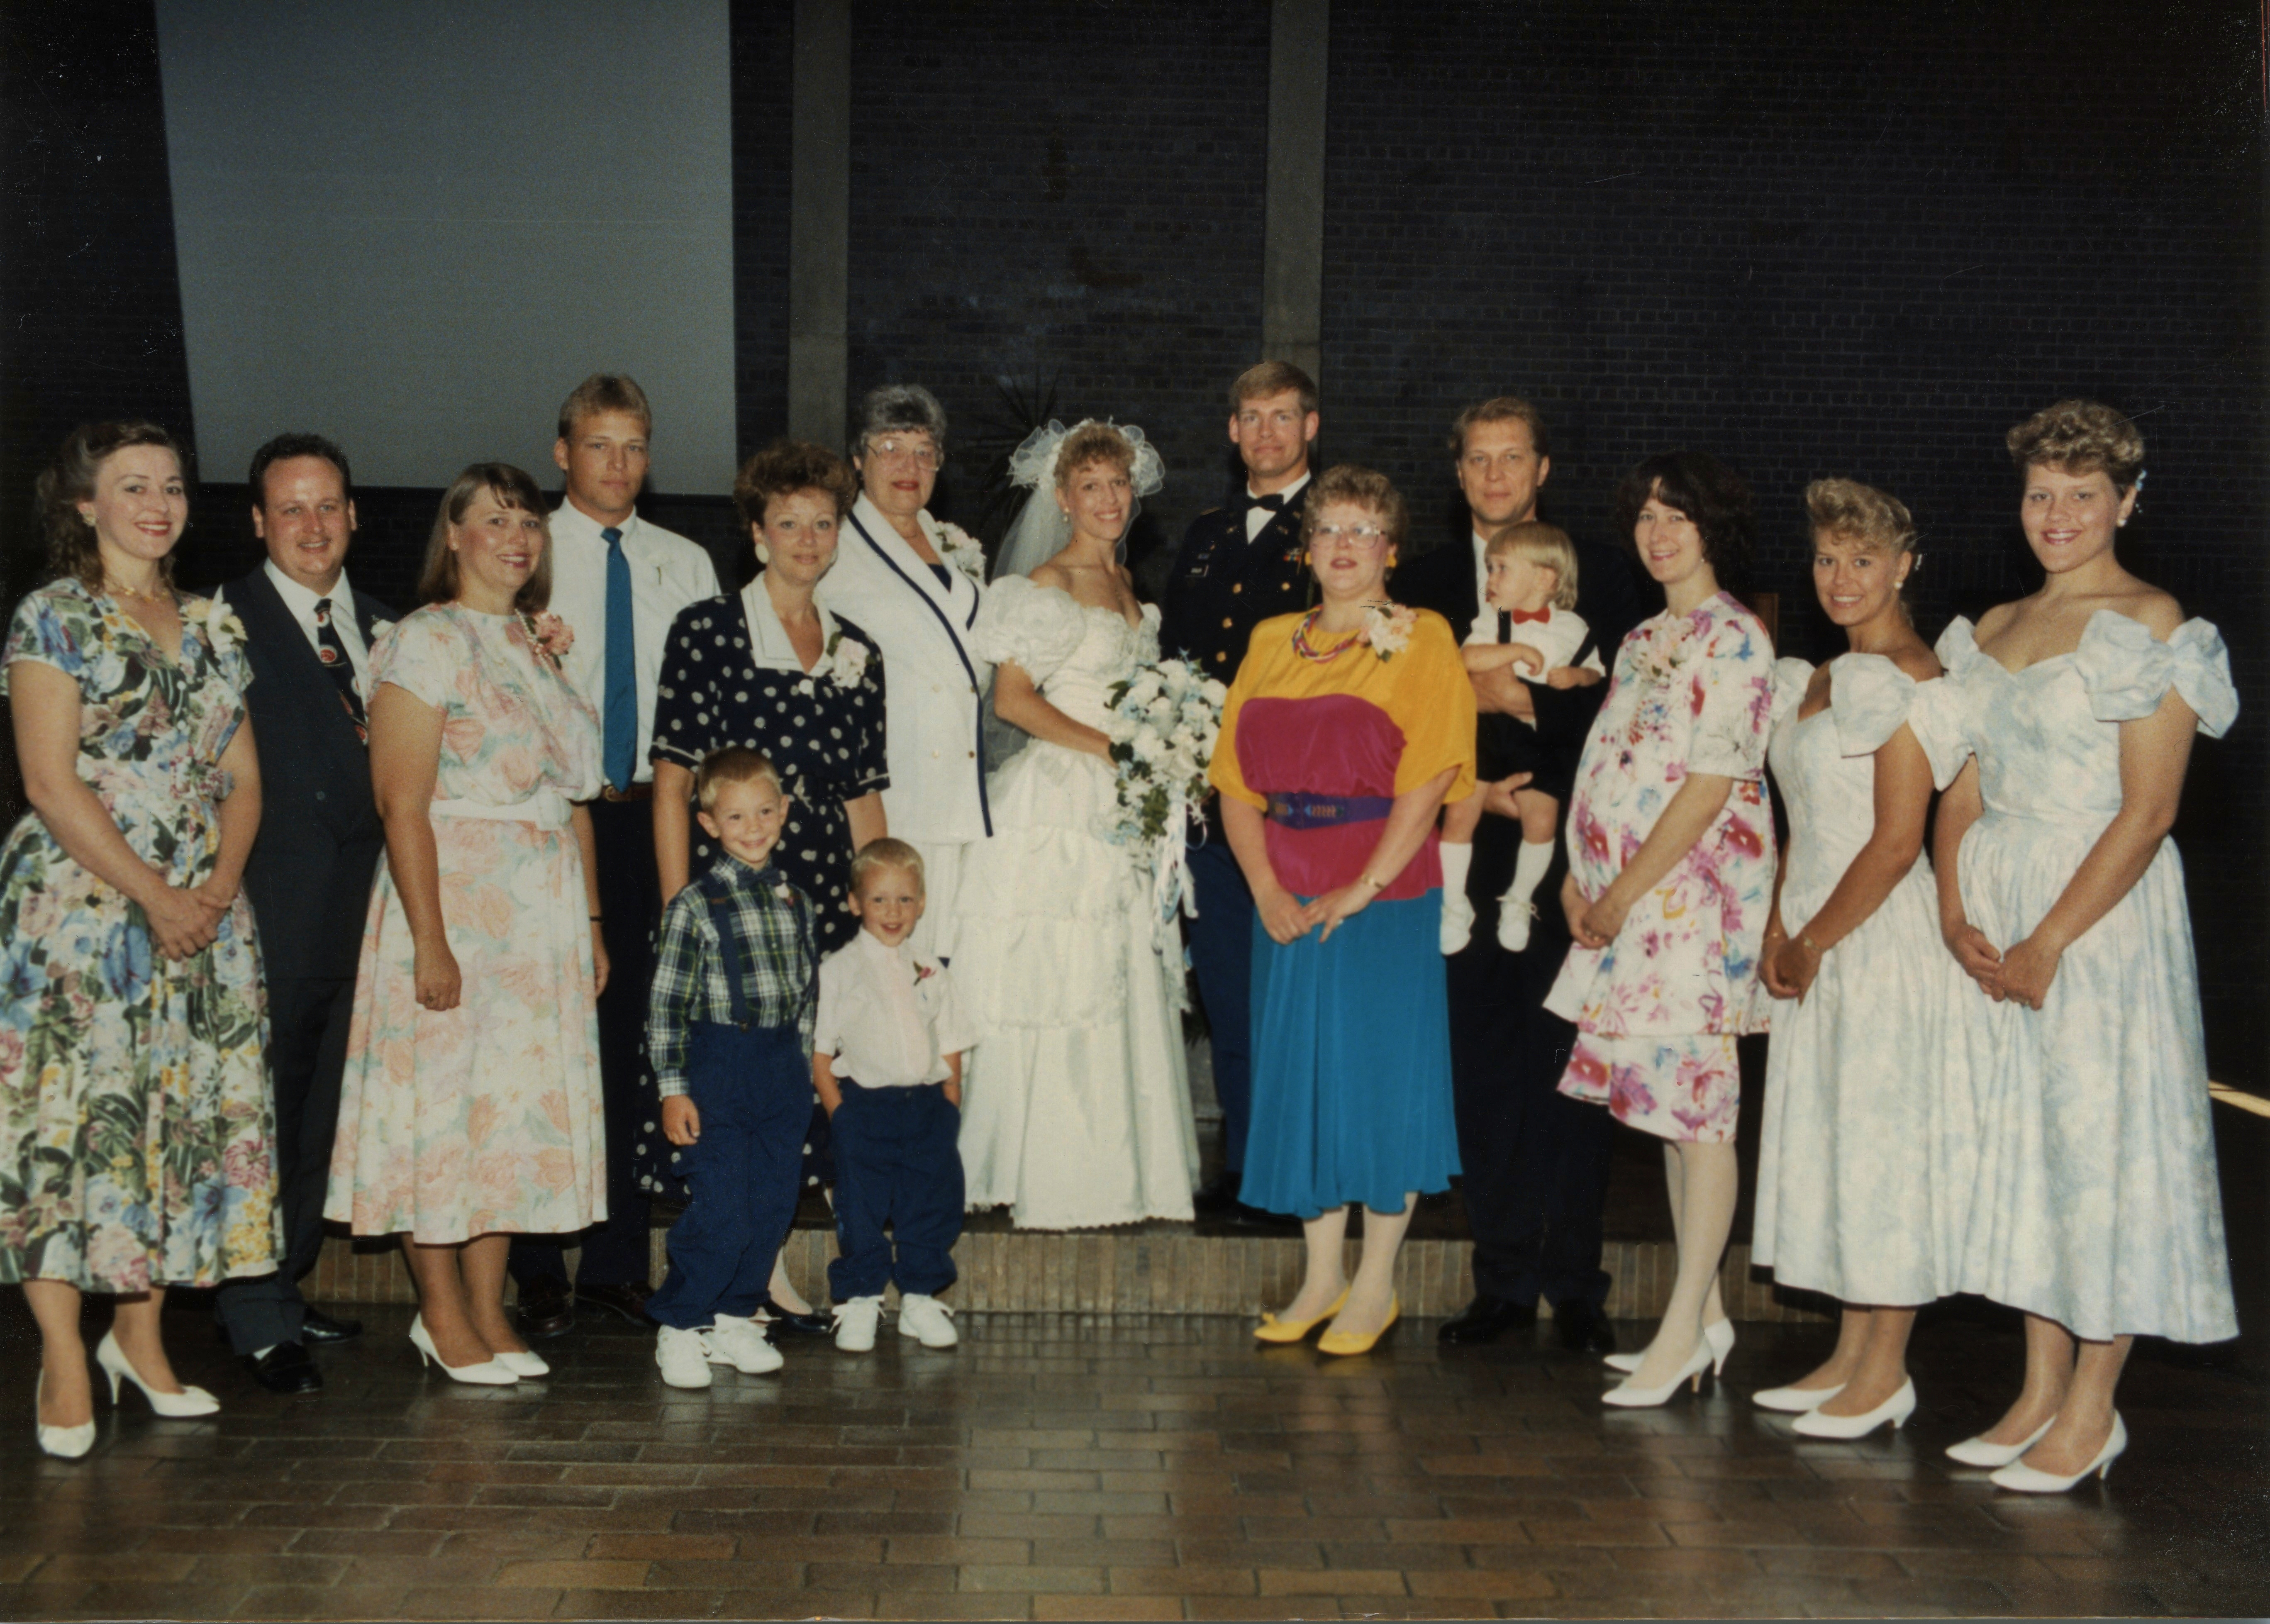 Ruth's Wedding 1990